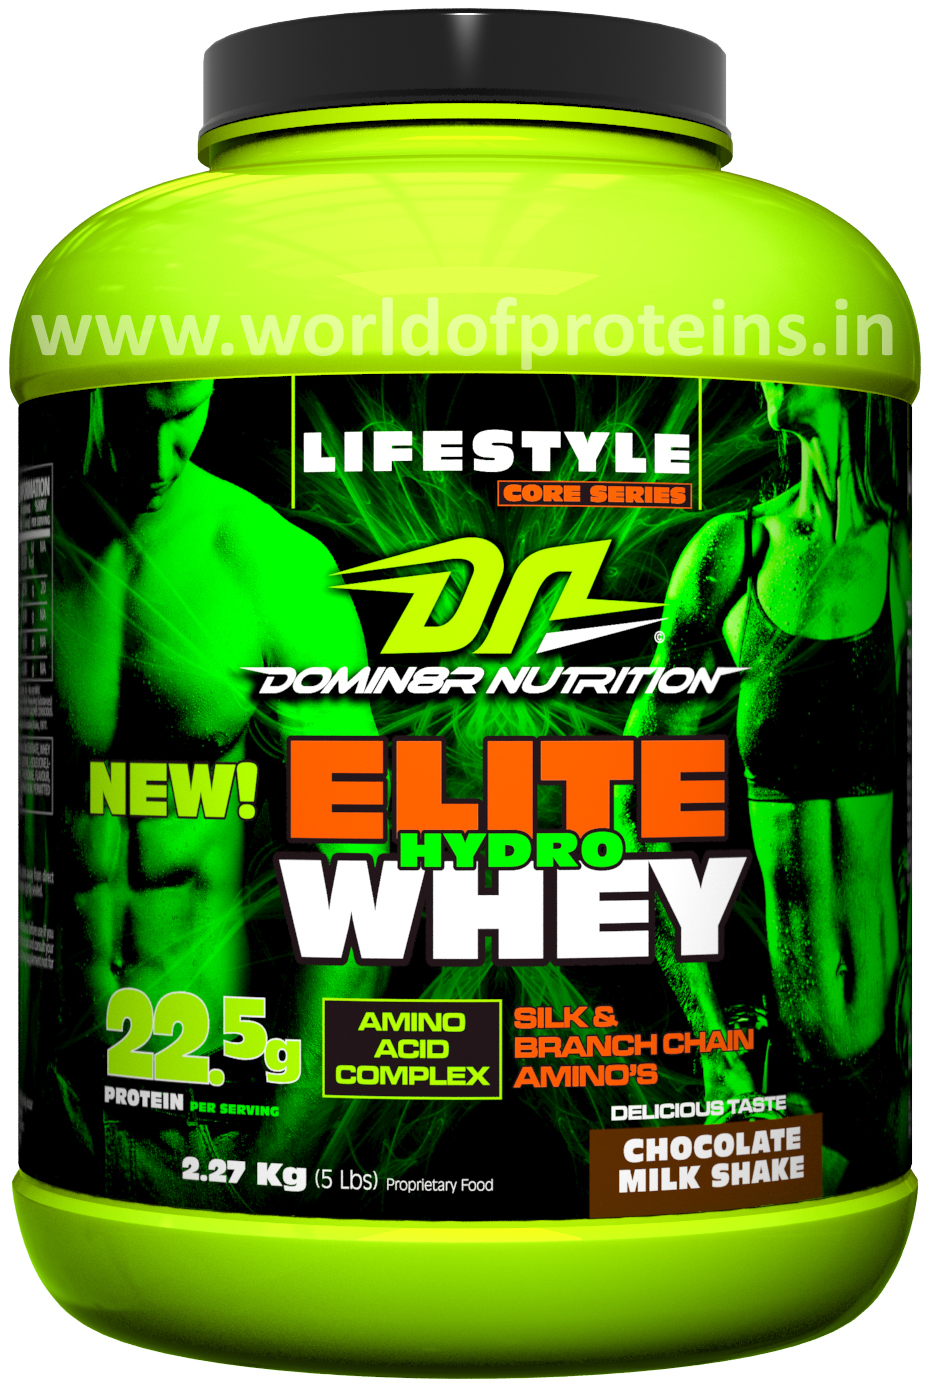 Buy Ultimate Nutrition Prostar Whey In Pune Mumbai Goa Rest Of India Protein 10 Lb Dn Elite Hydro 5 Lbchocolate Proteins